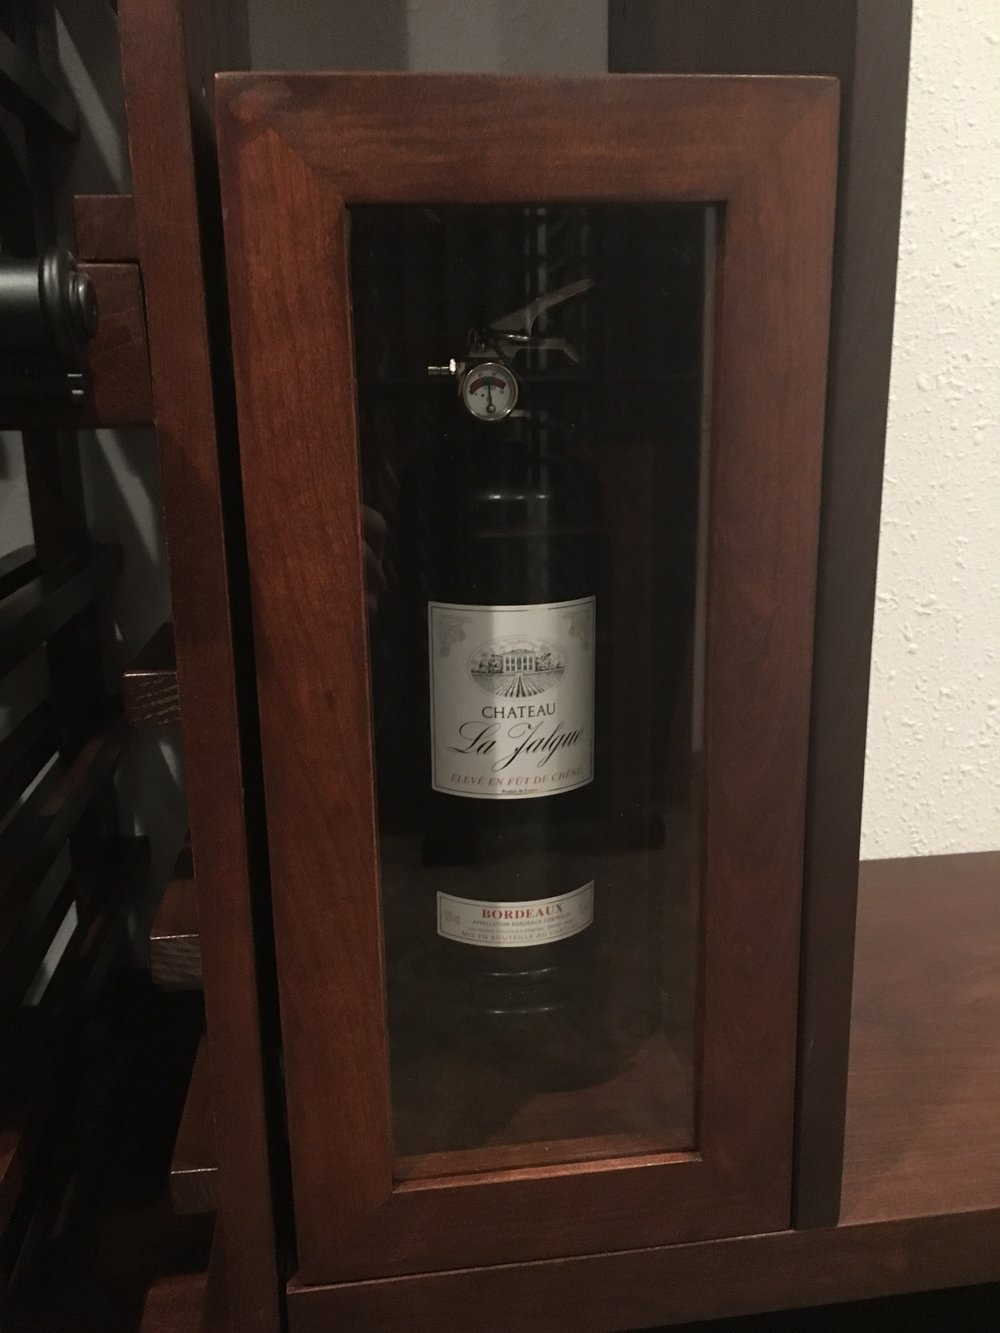 Fire extinguisher box in wine cellar